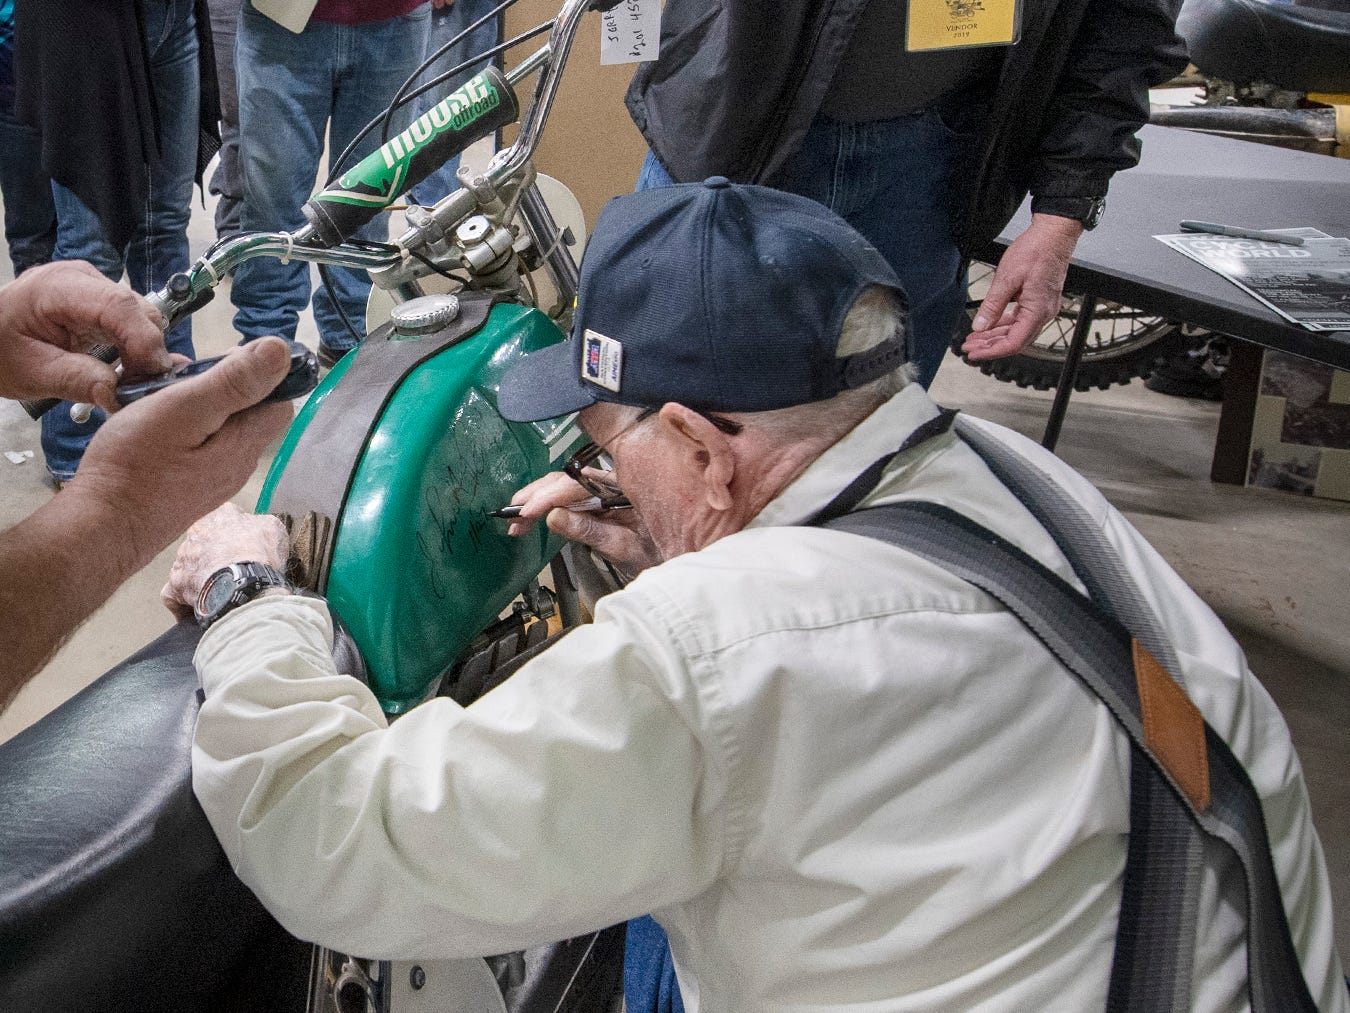 John Penton, bottom, signs a 1972 Penton motorcycle he produced for the bike's owner, Jerry Doster, during the The Potomac Vintage Riders York Swap Meet. Penton was one of the most influential figures in the development of off-road motorcycle racing in America during the 1960s and 1970s.